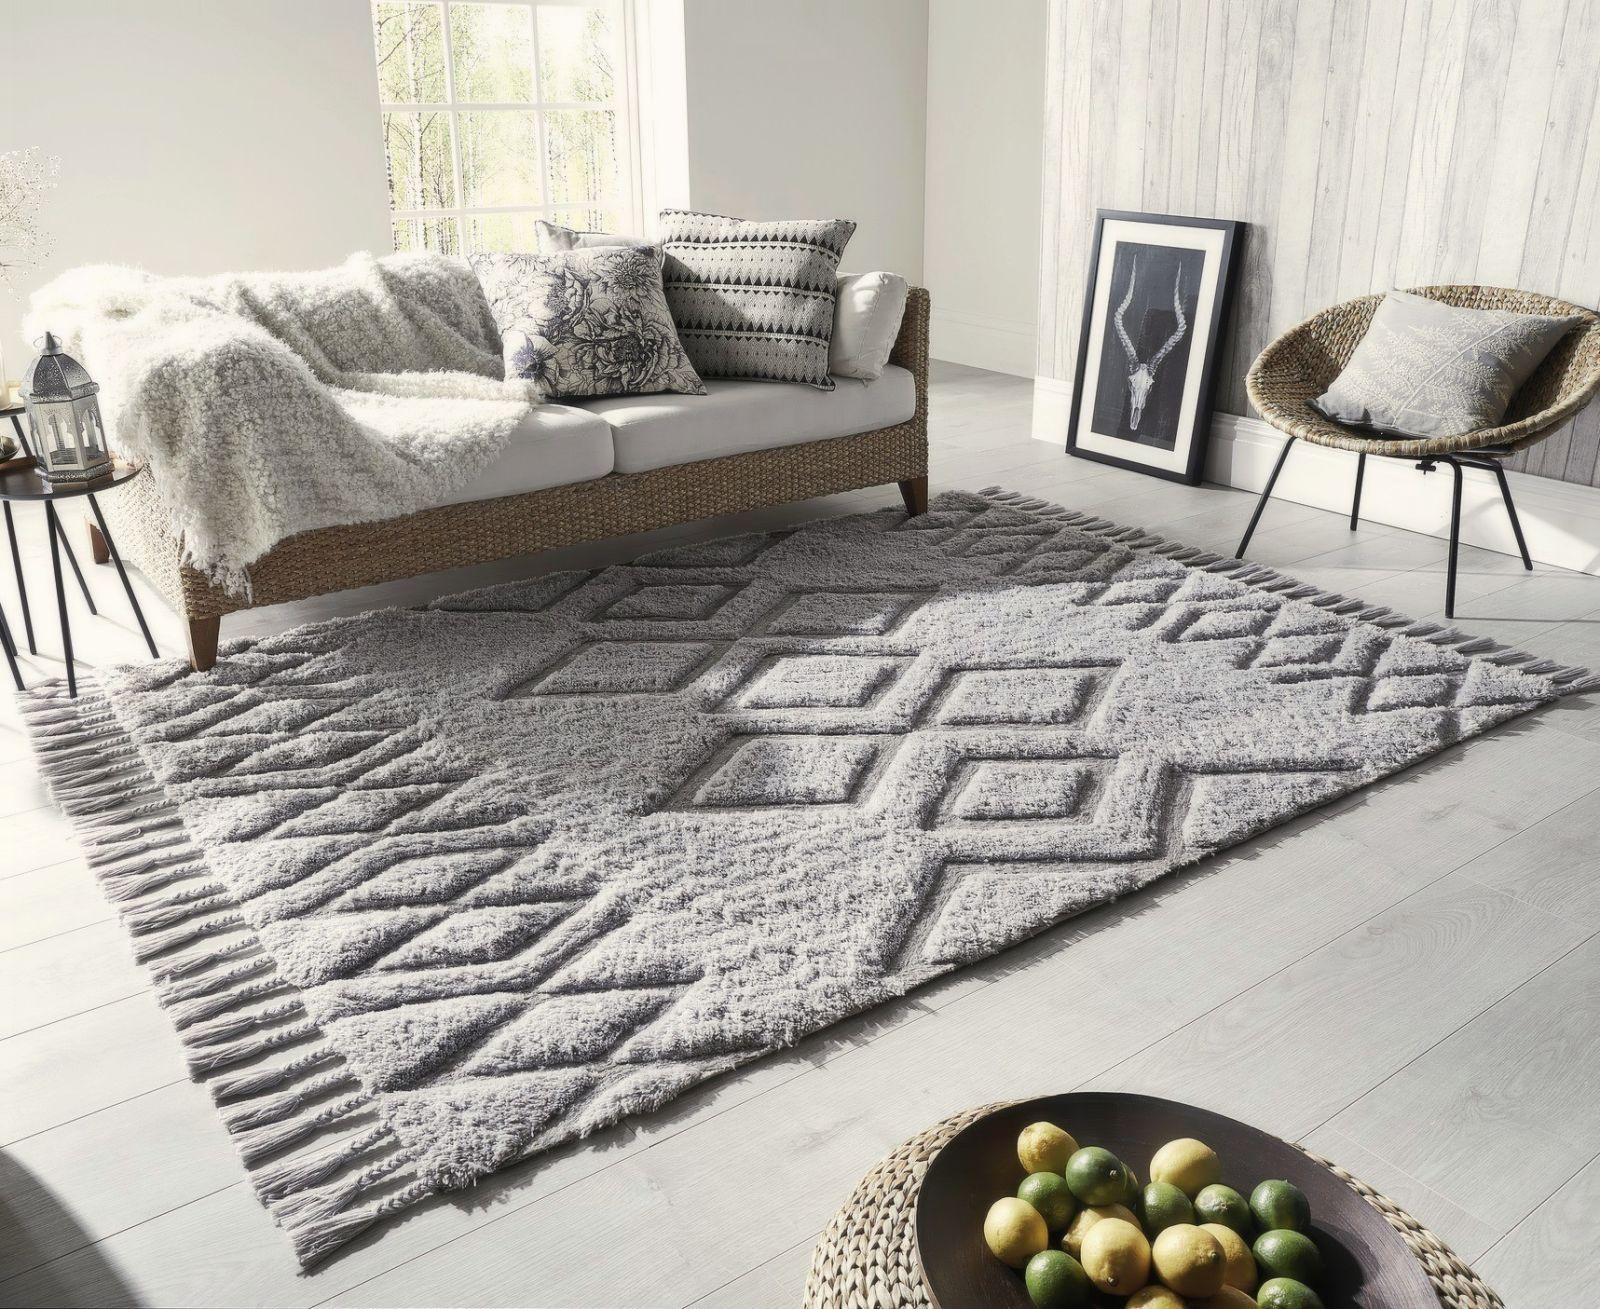 10 of the best grey rugs large rugs for living room bedroom and rh housebeautiful com dark grey rug living room gray rug living room